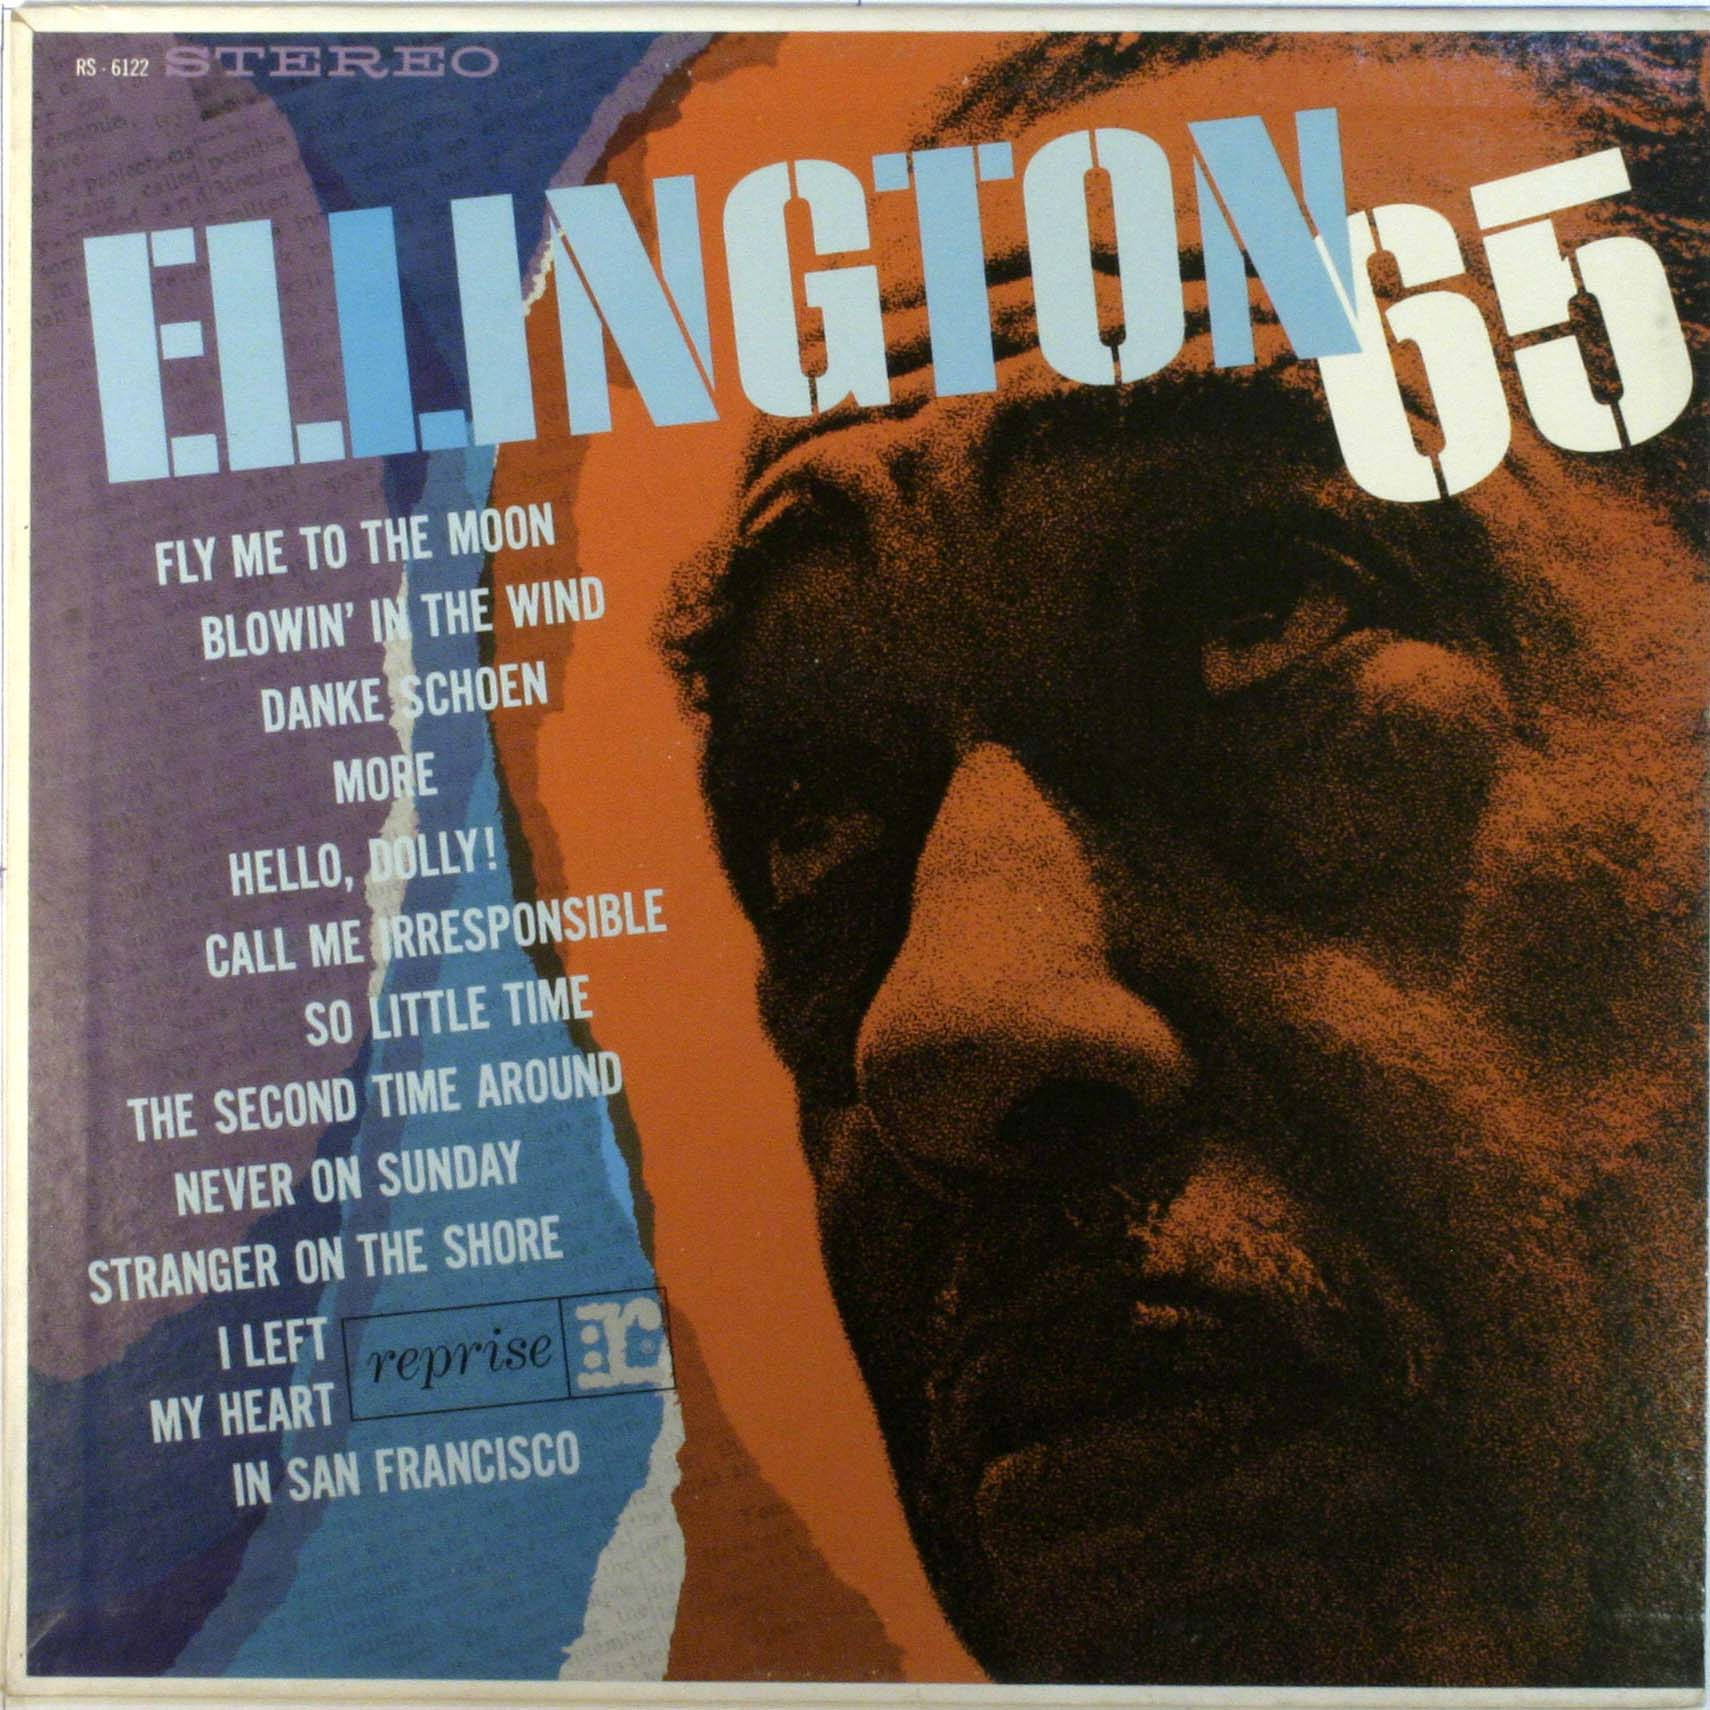 Duke Ellington - Ellington 65